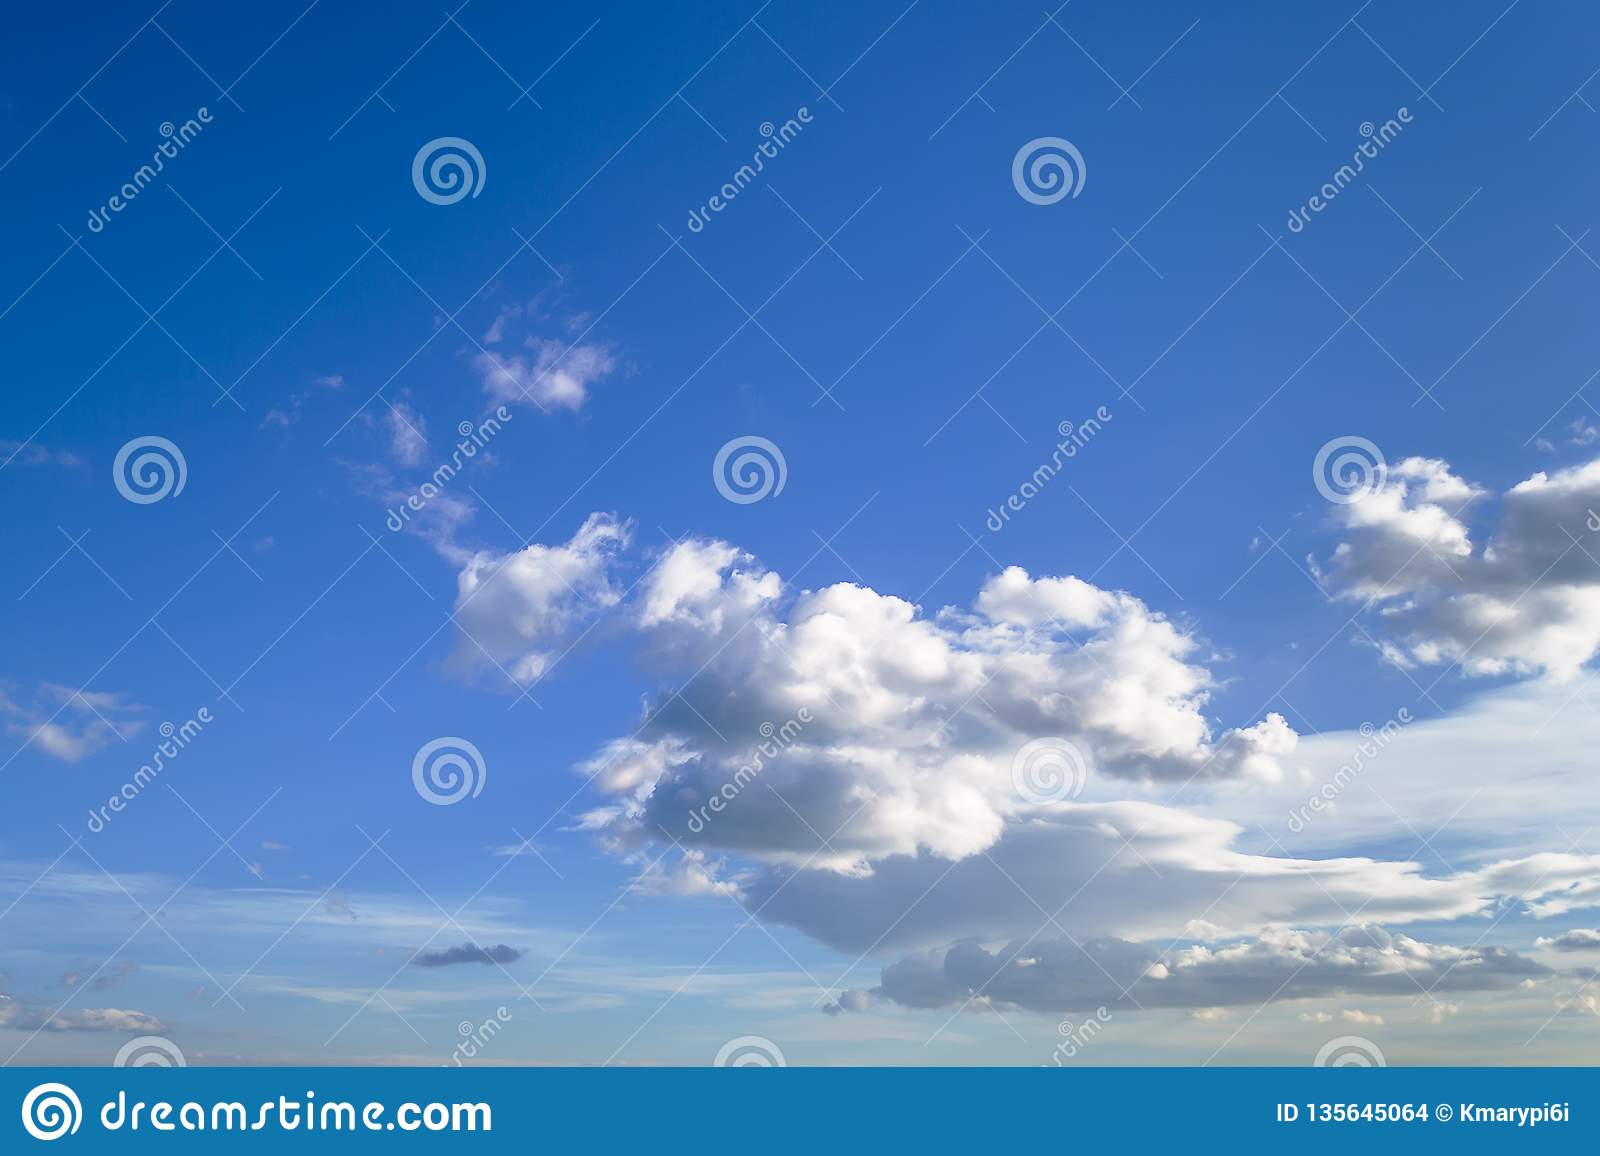 A lot of white scenic clouds high in blue sky on a sunny day, atmosphere skyscape